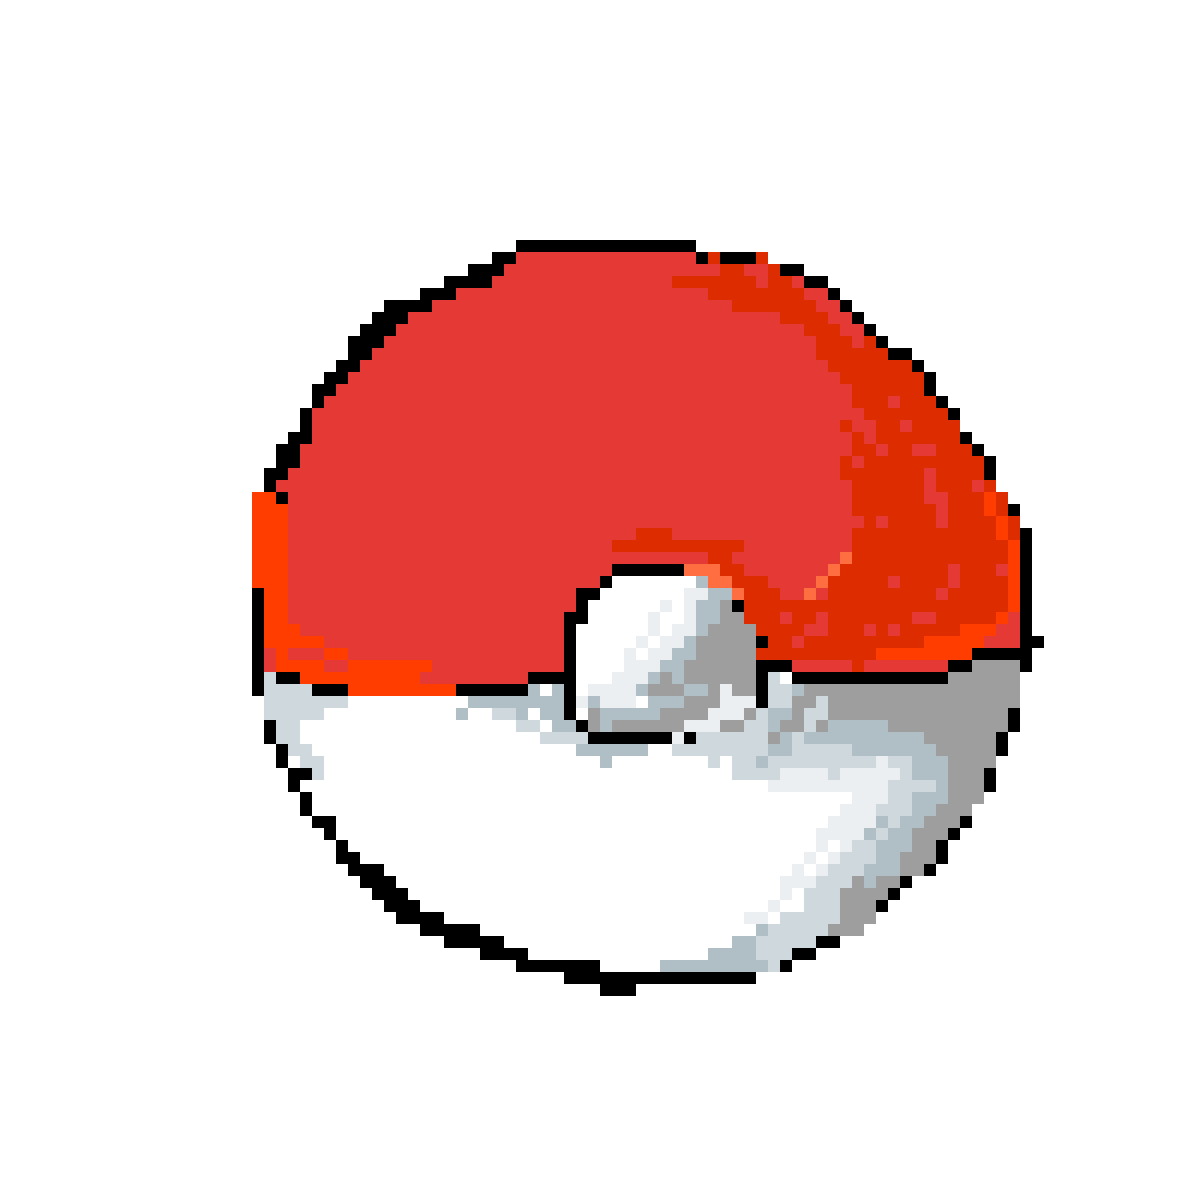 Pokeball by moonlanesan